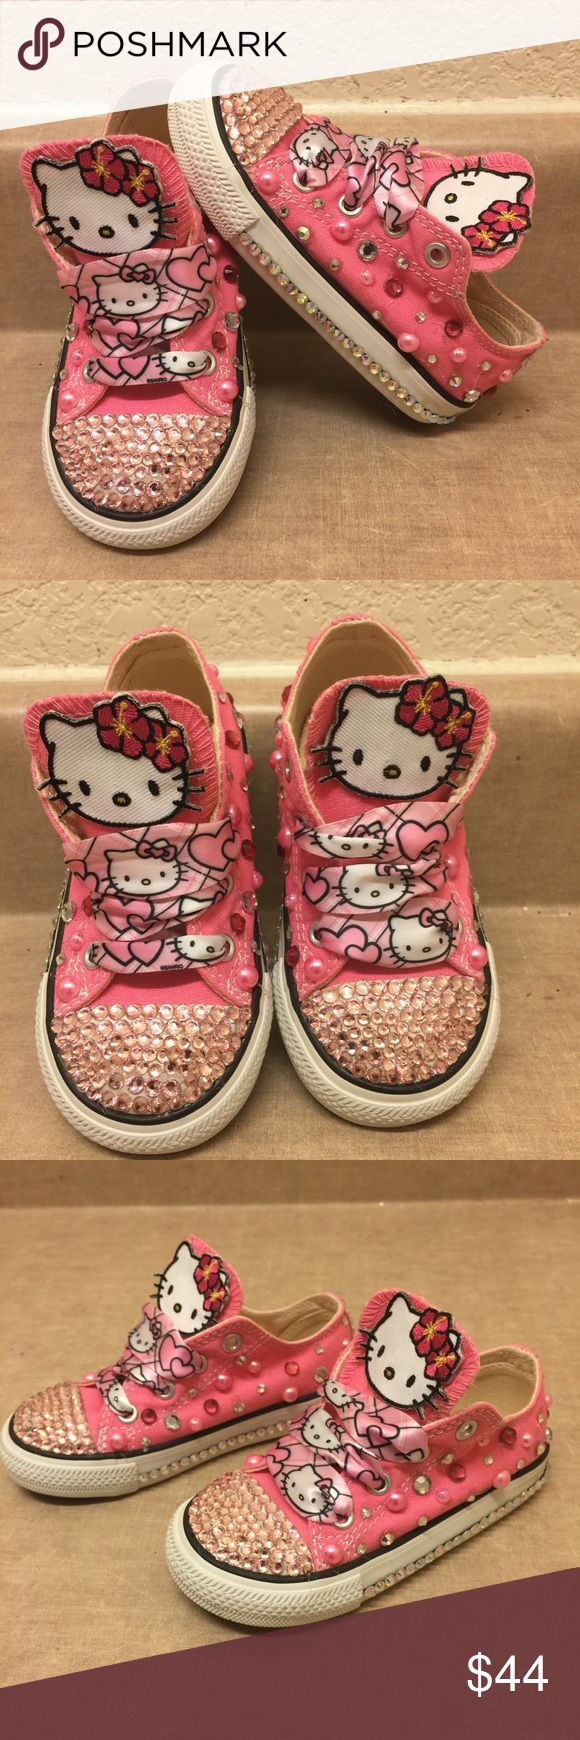 💕Toddlers Hello Kitty Converse💕 These Custom made Hello Kitty converse are adorable for little girls to wear on there birthday with diamonds and pearls on them that bling! these shoes are great for a birthday gift! Very blingy so cute!! 👍🏾 Brand new never worn..Last pair Converse Shoes Sneakers